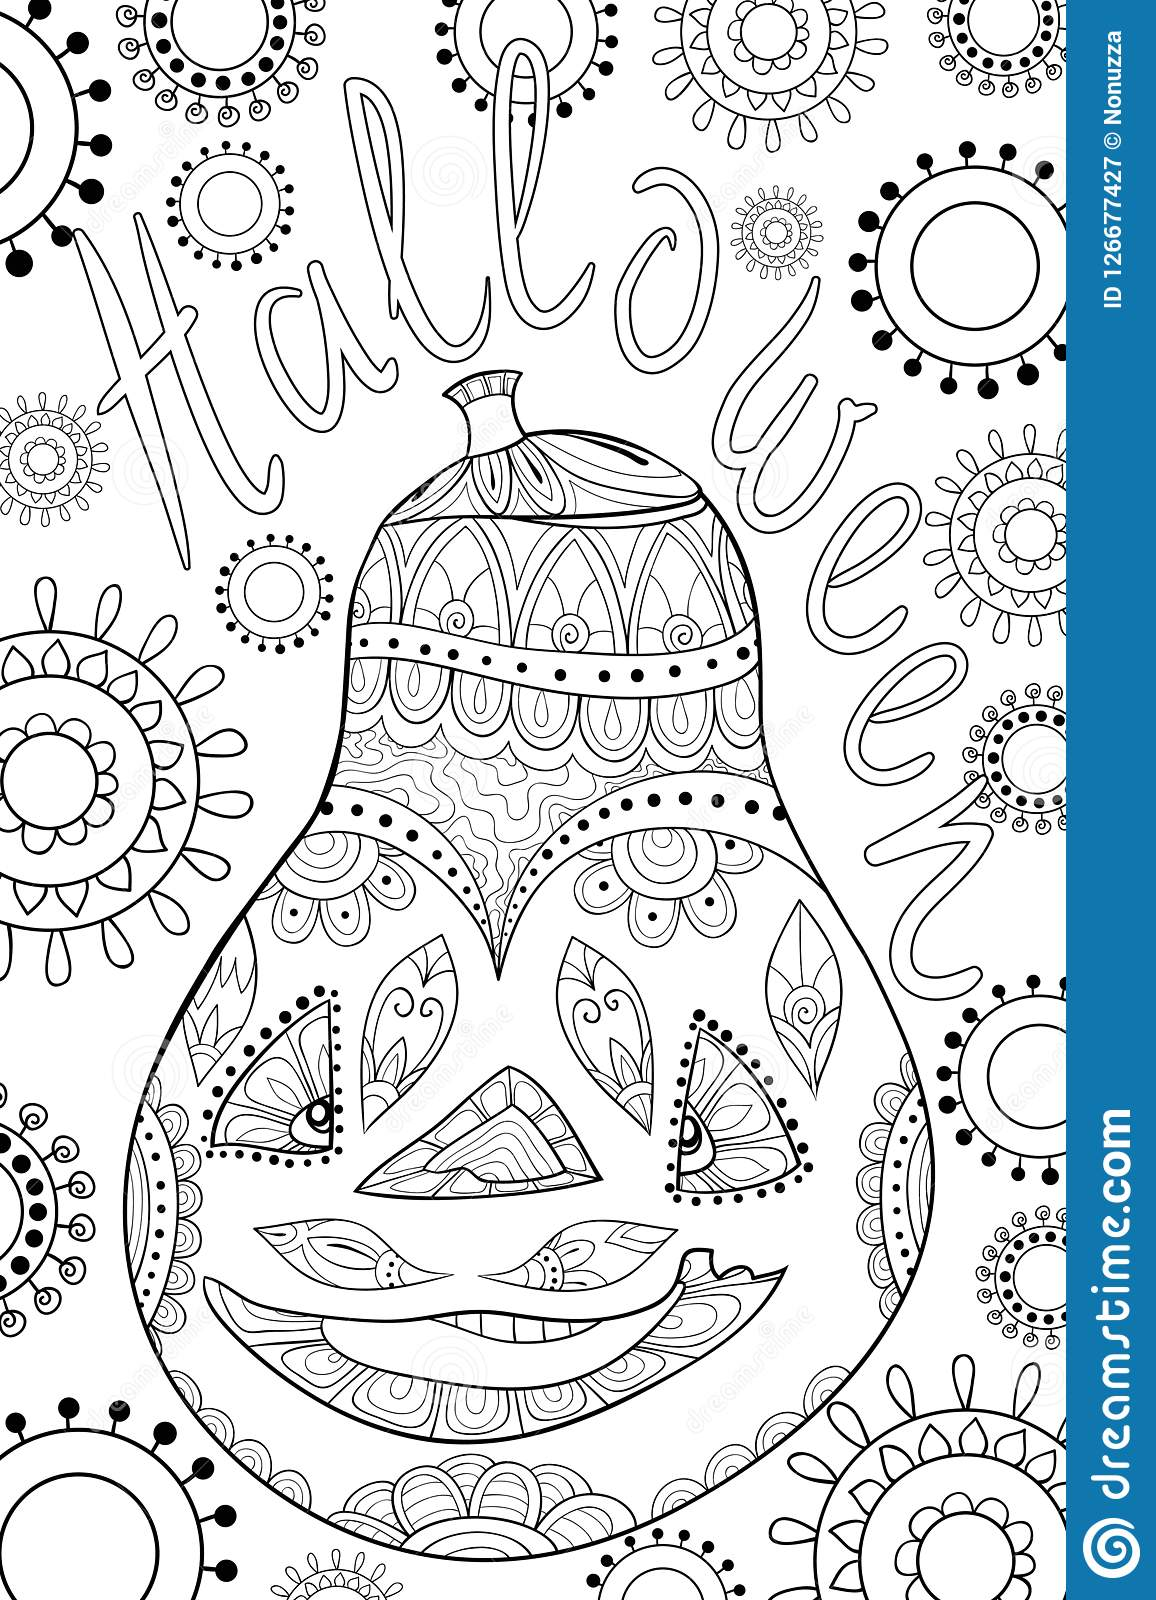 Adult Coloring Book Page A Halloween Theme Illustration For Relaxing